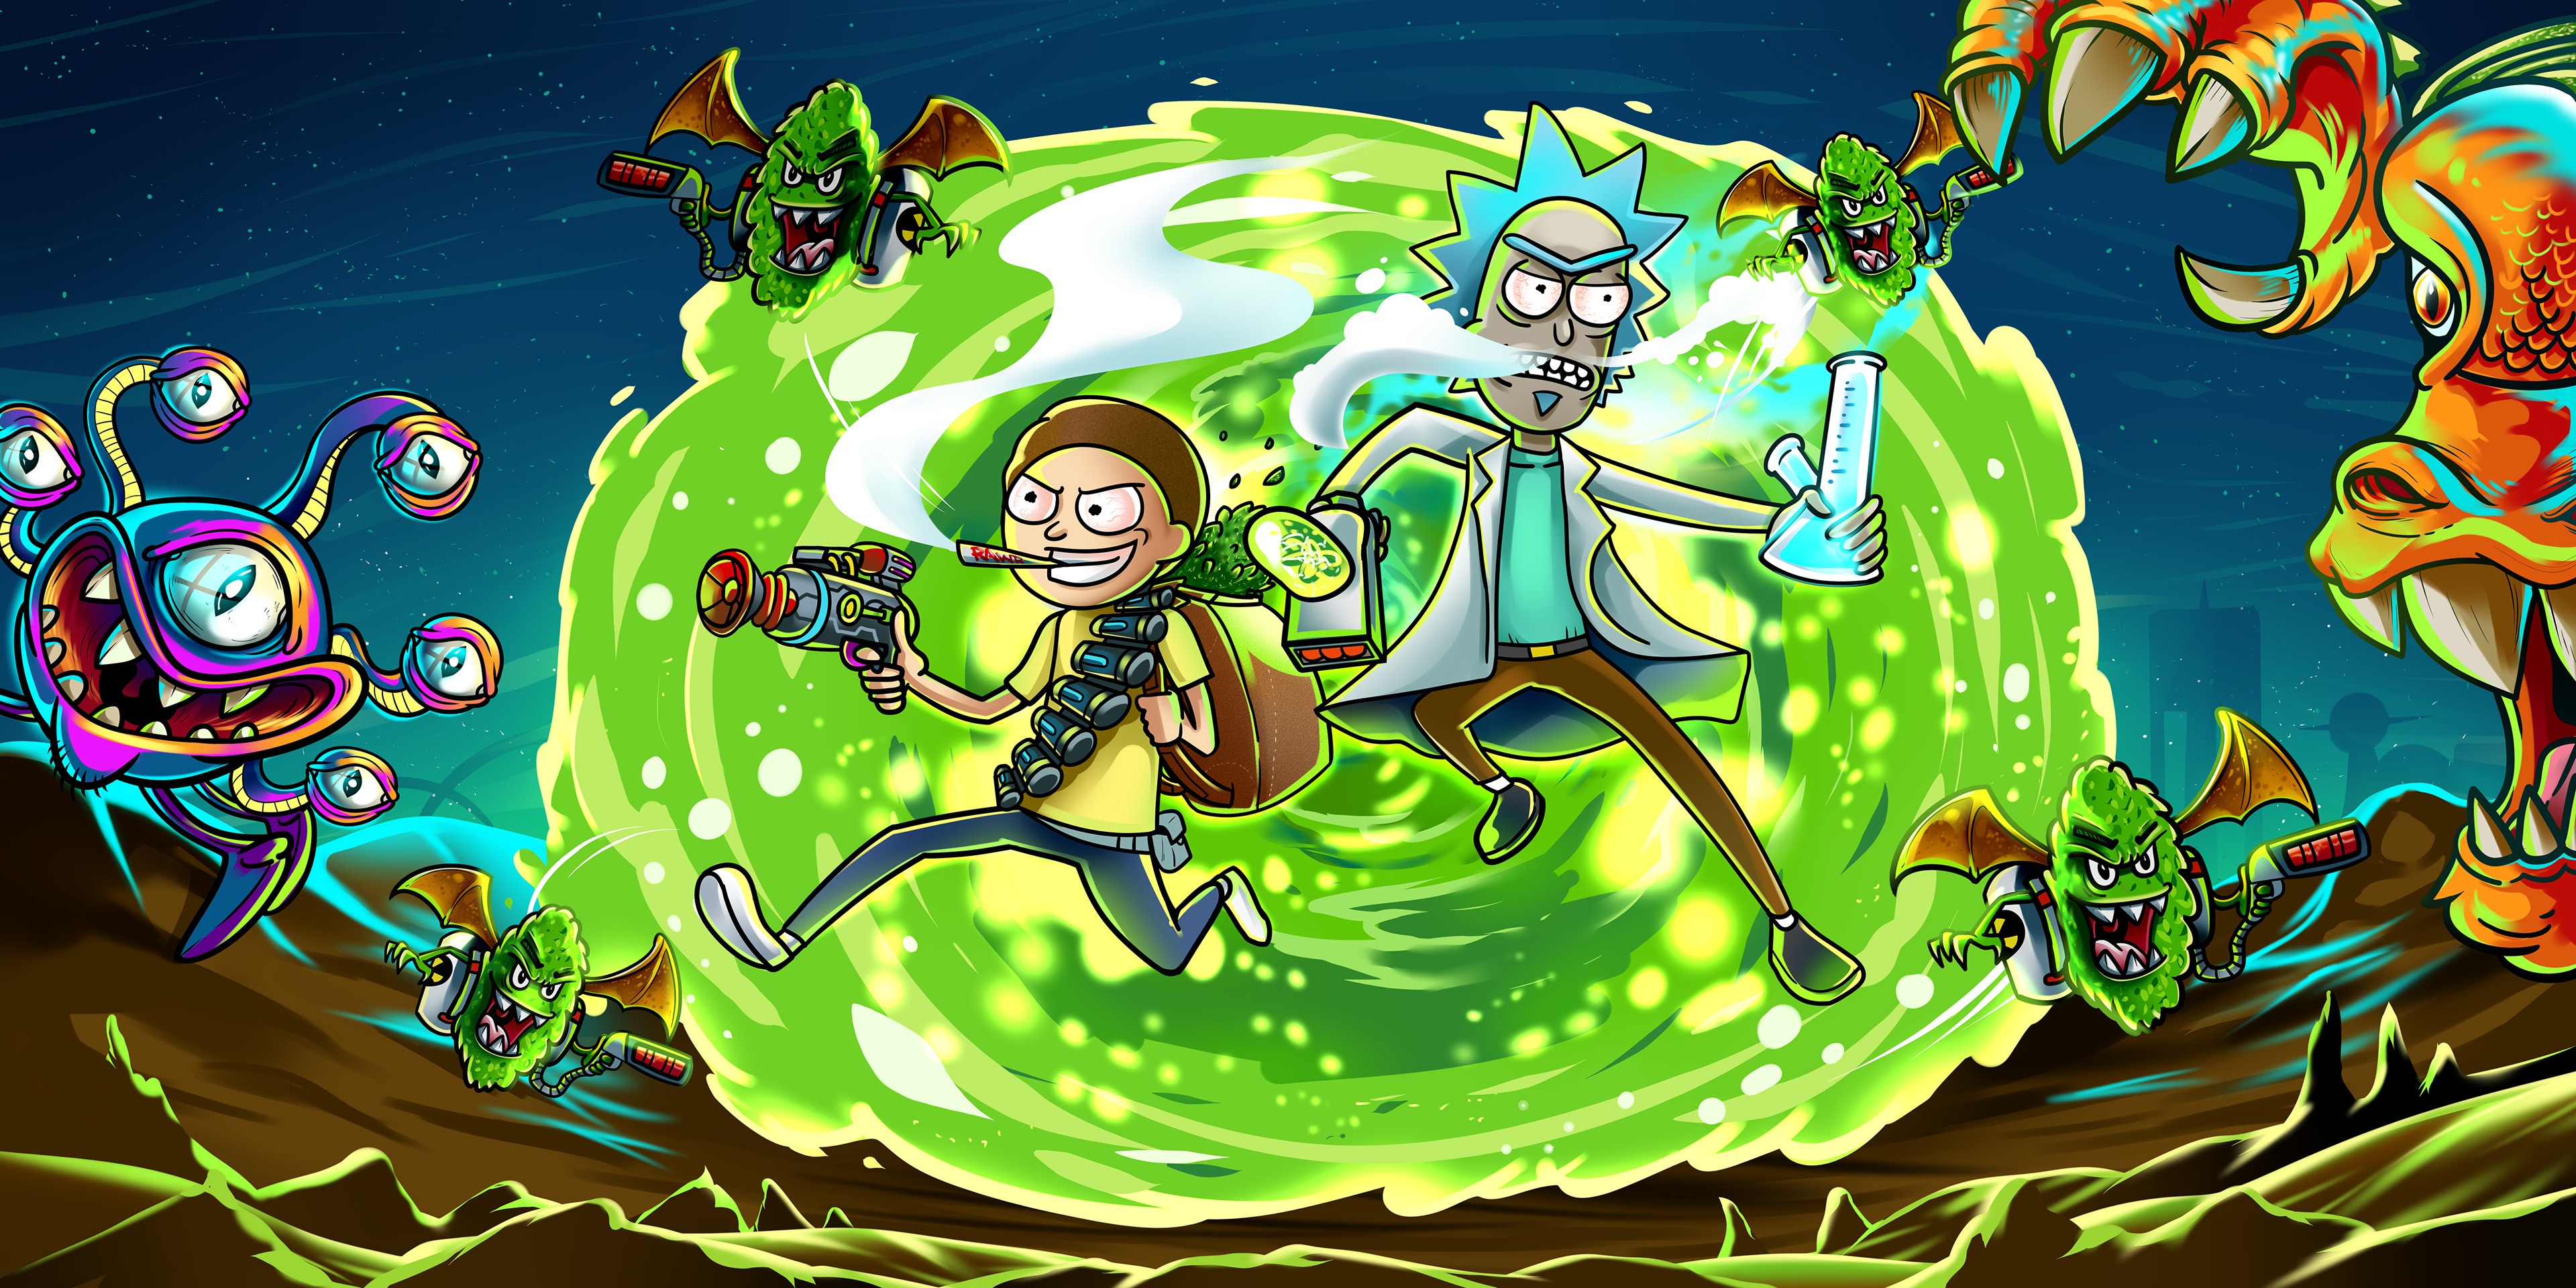 Rick And Morty In Another Dimension Illustration, HD Tv ...